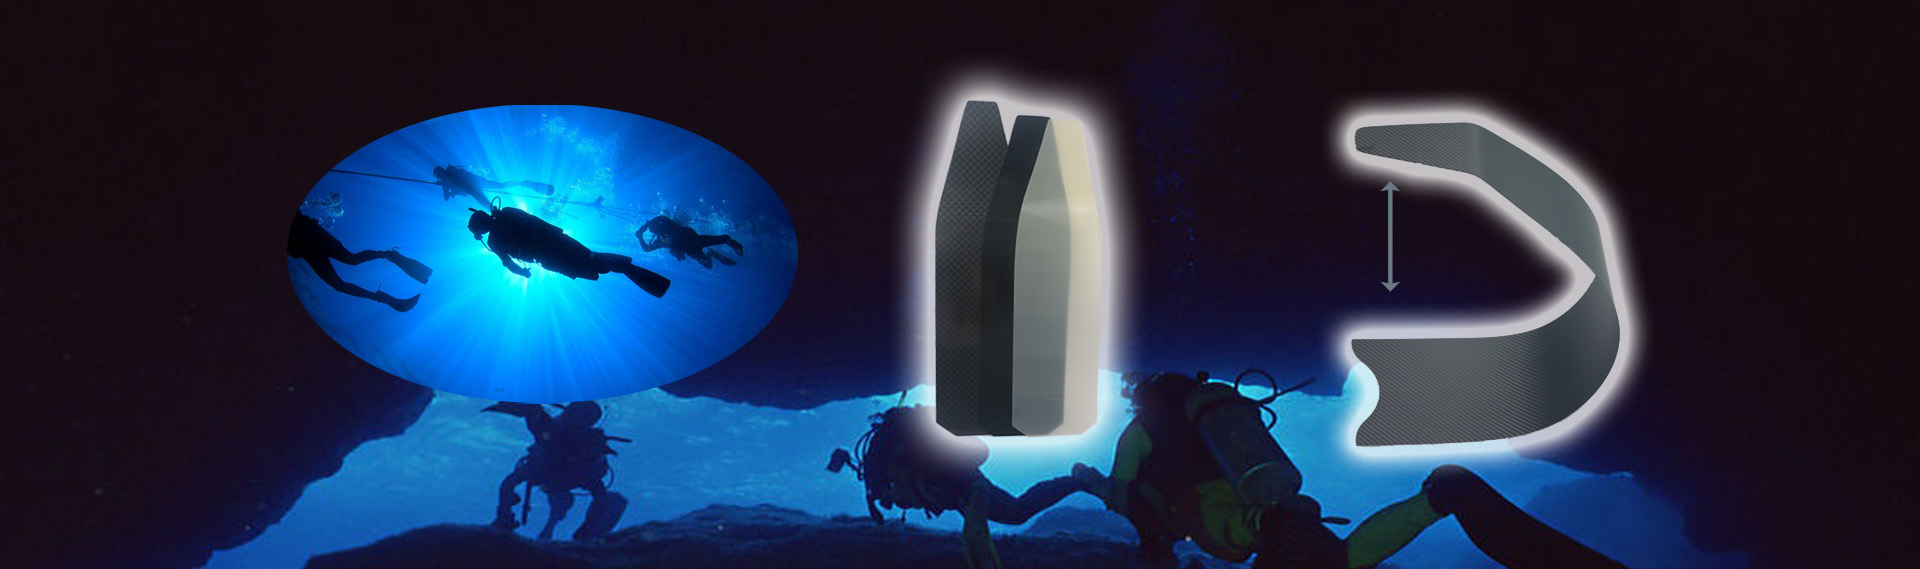 BESTWILL COMPOSITE., Ltd. Diving fins